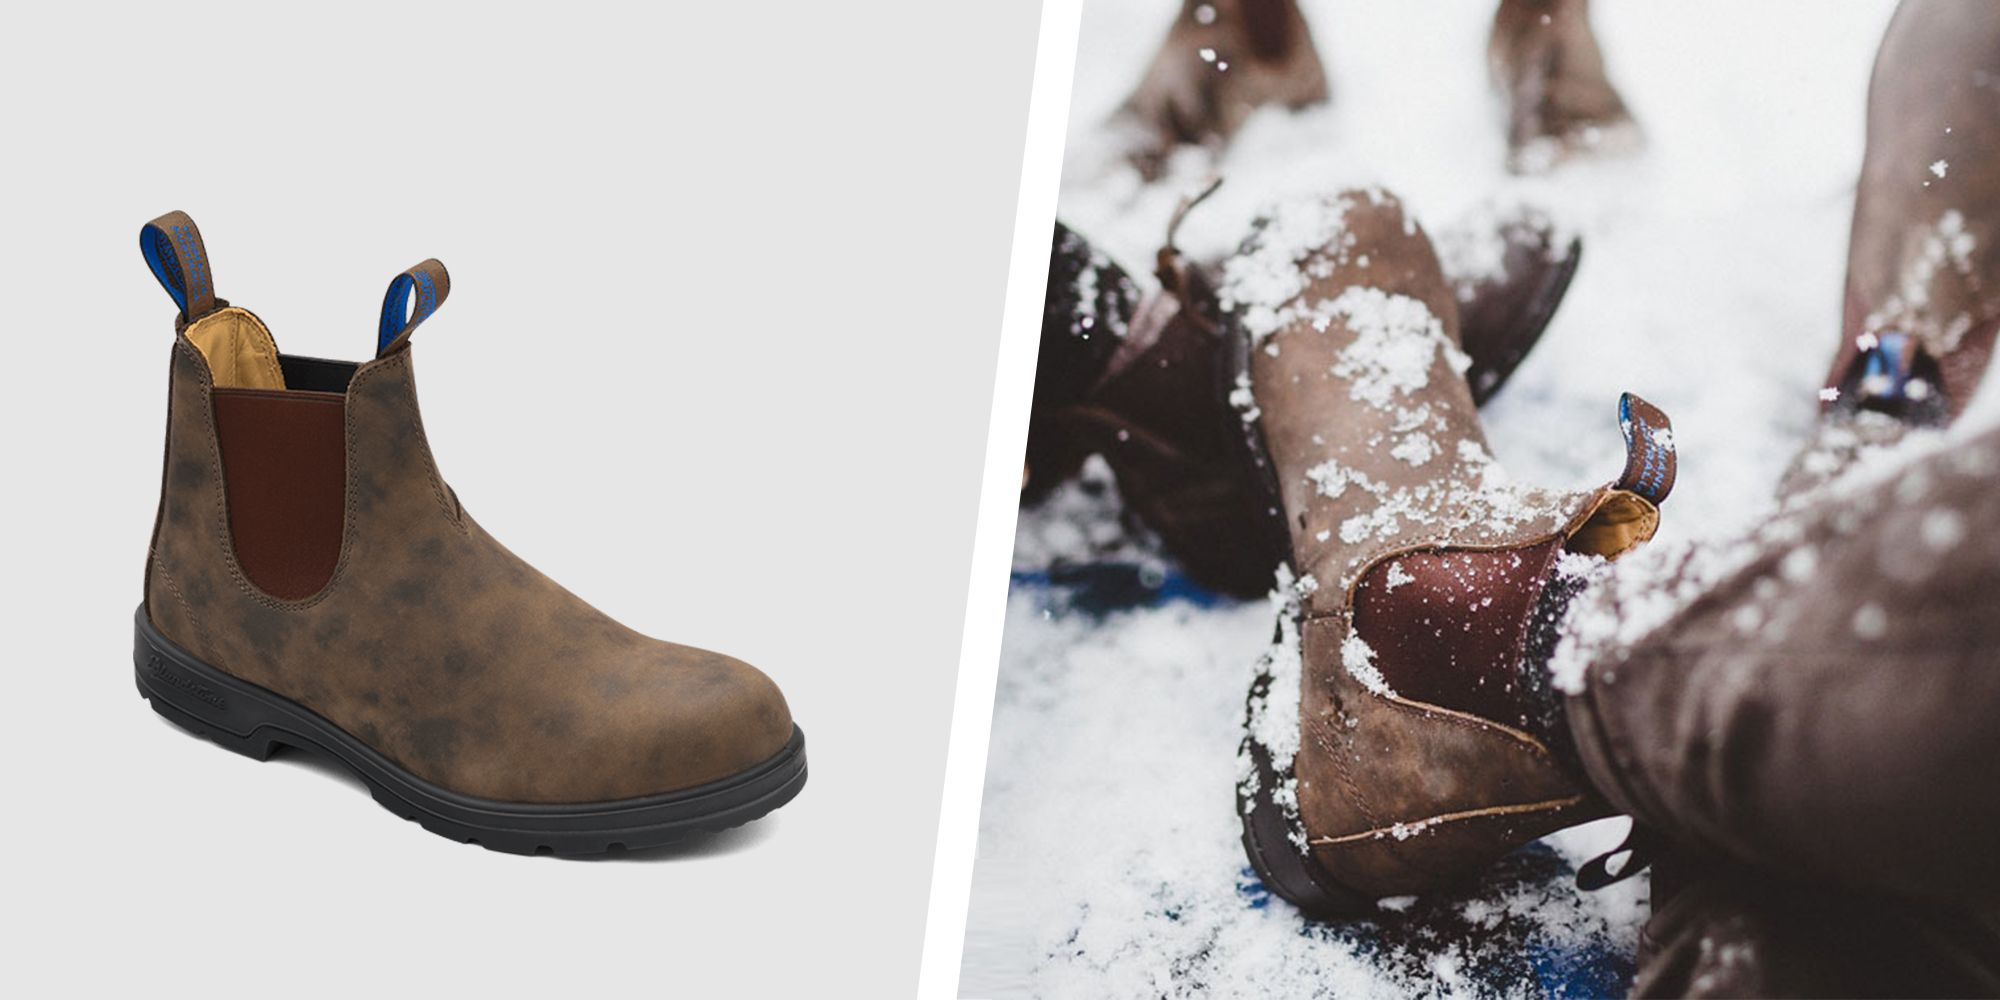 17 Best Winter Boots For Men 2021 — Stylish Winter Shoes for Men